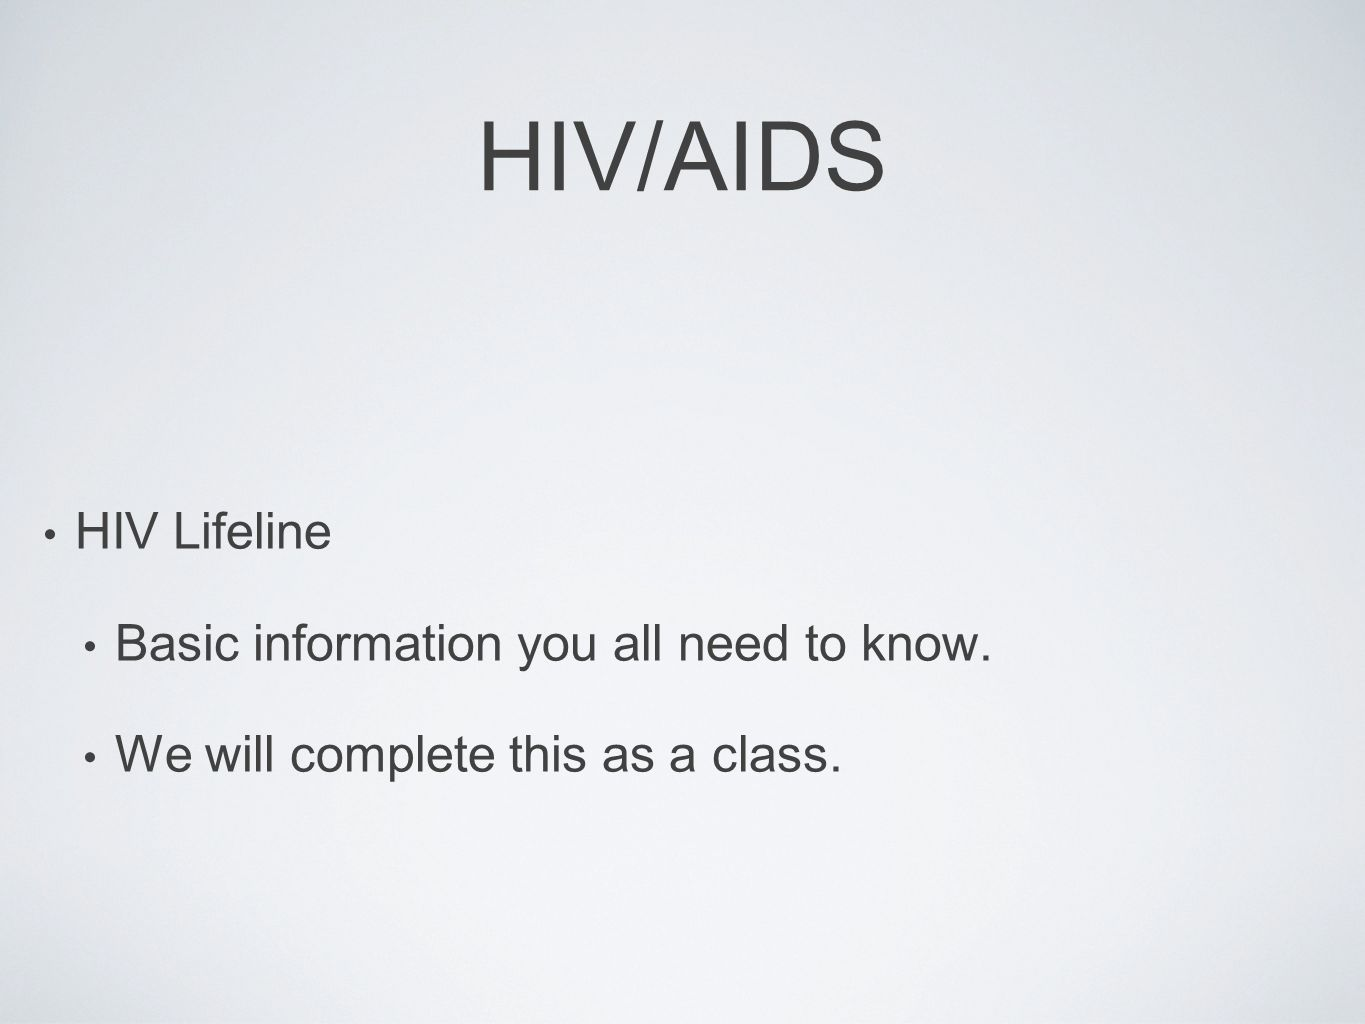 HIV/AIDS HIV Lifeline Basic information you all need to know.